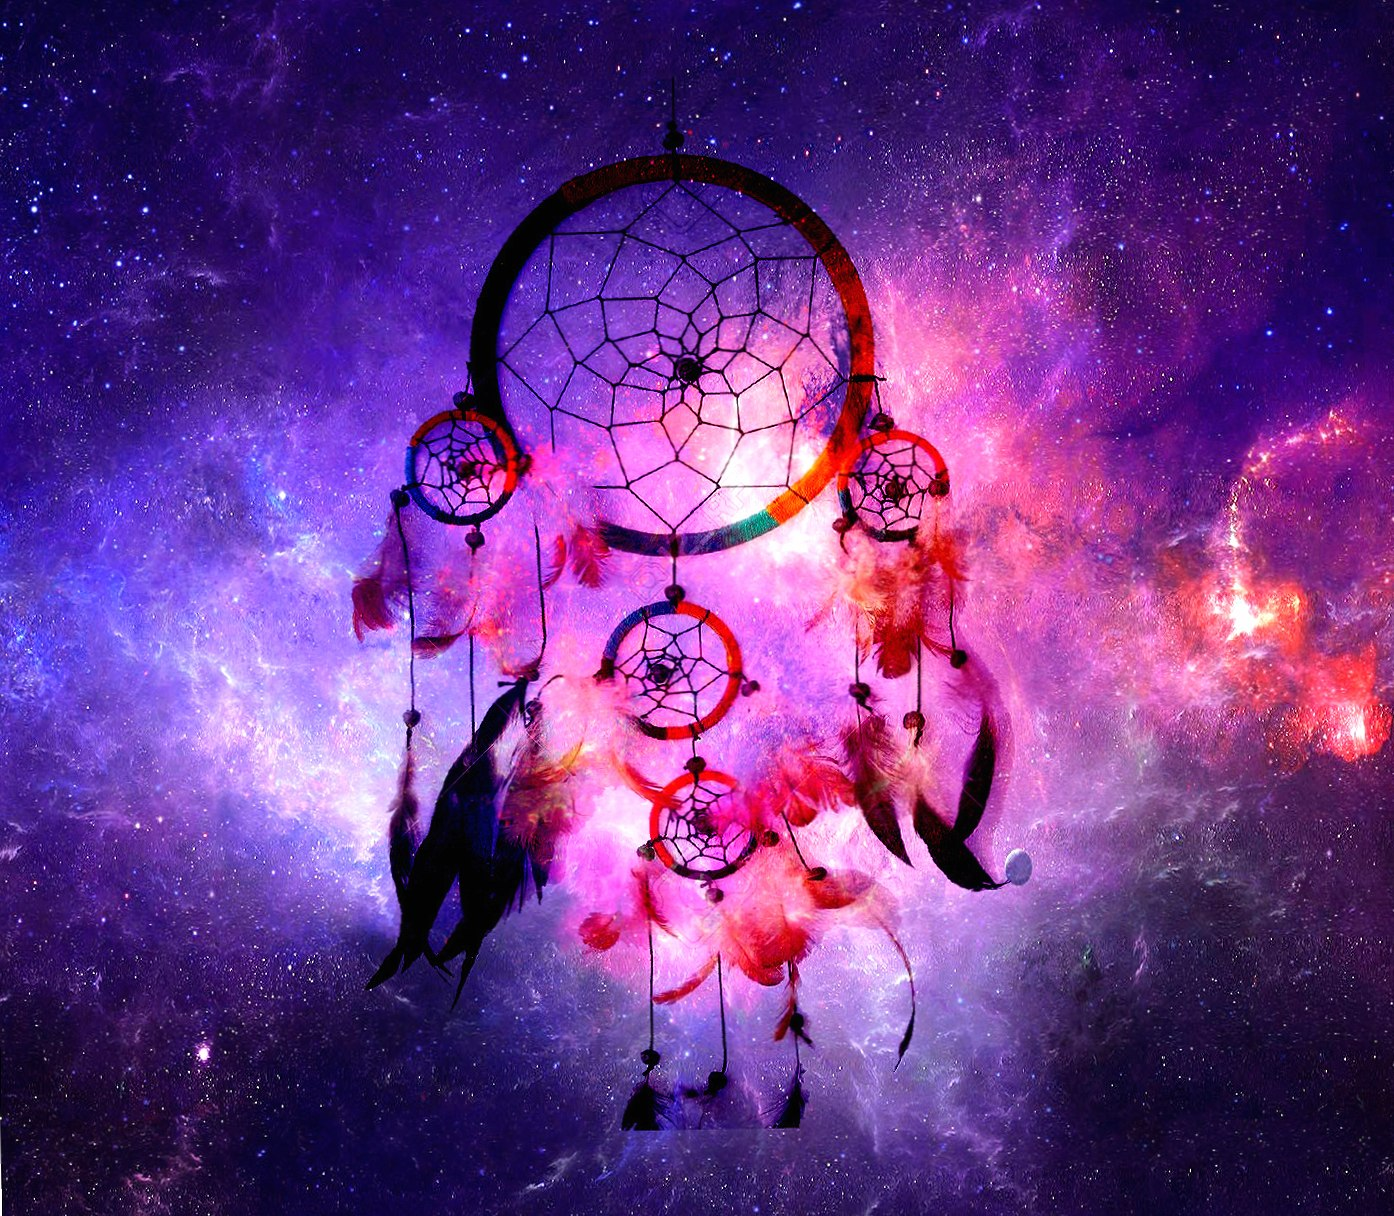 dreamcatcher space wallpapers HD quality